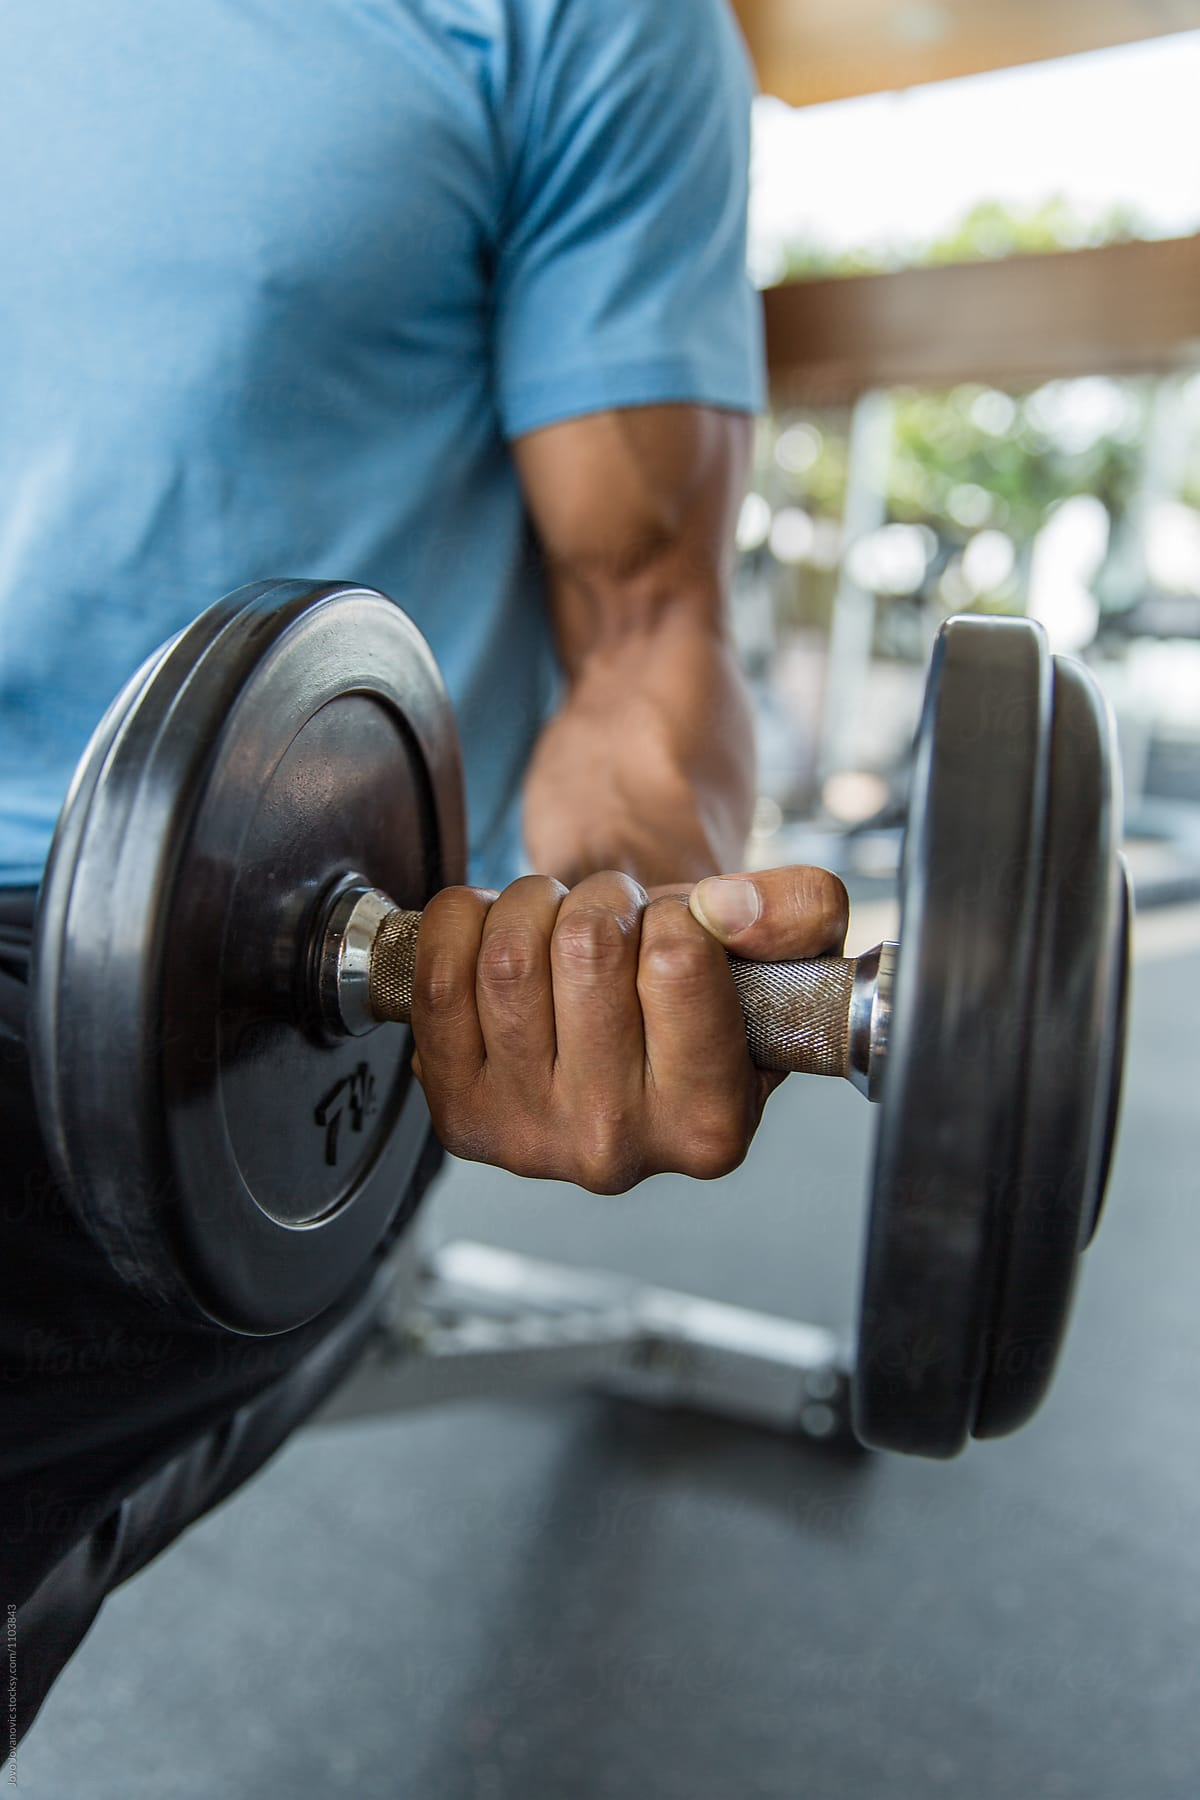 Black man working out at the gym - lifting weights by Jovo Jovanovic for  Stocksy United